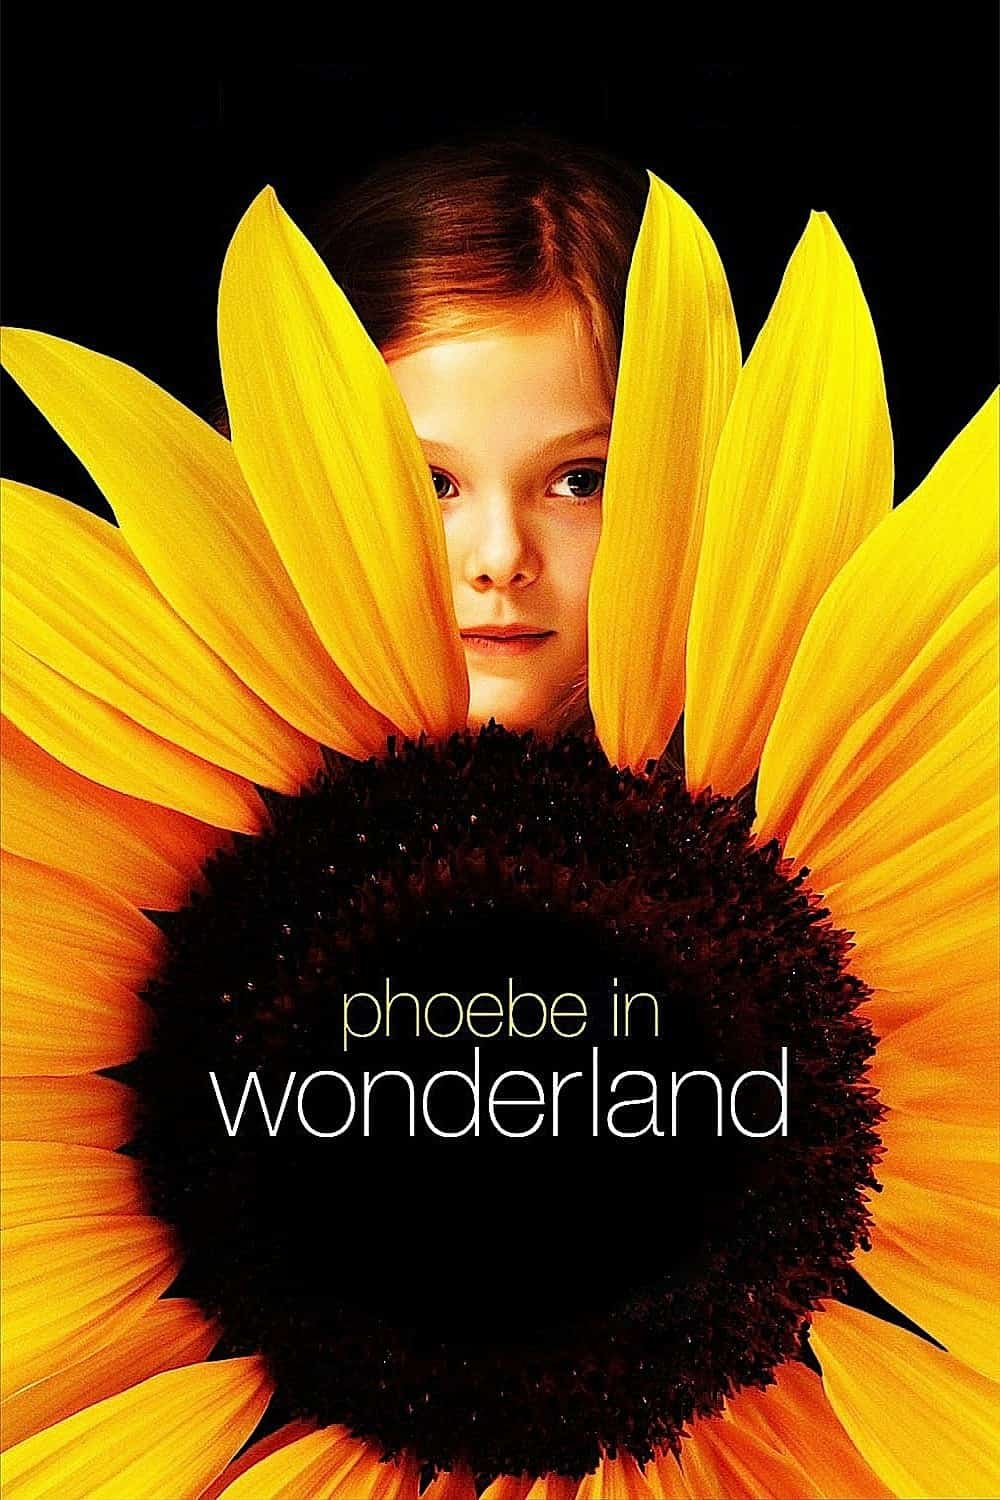 Phoebe in Wonderland, 2008